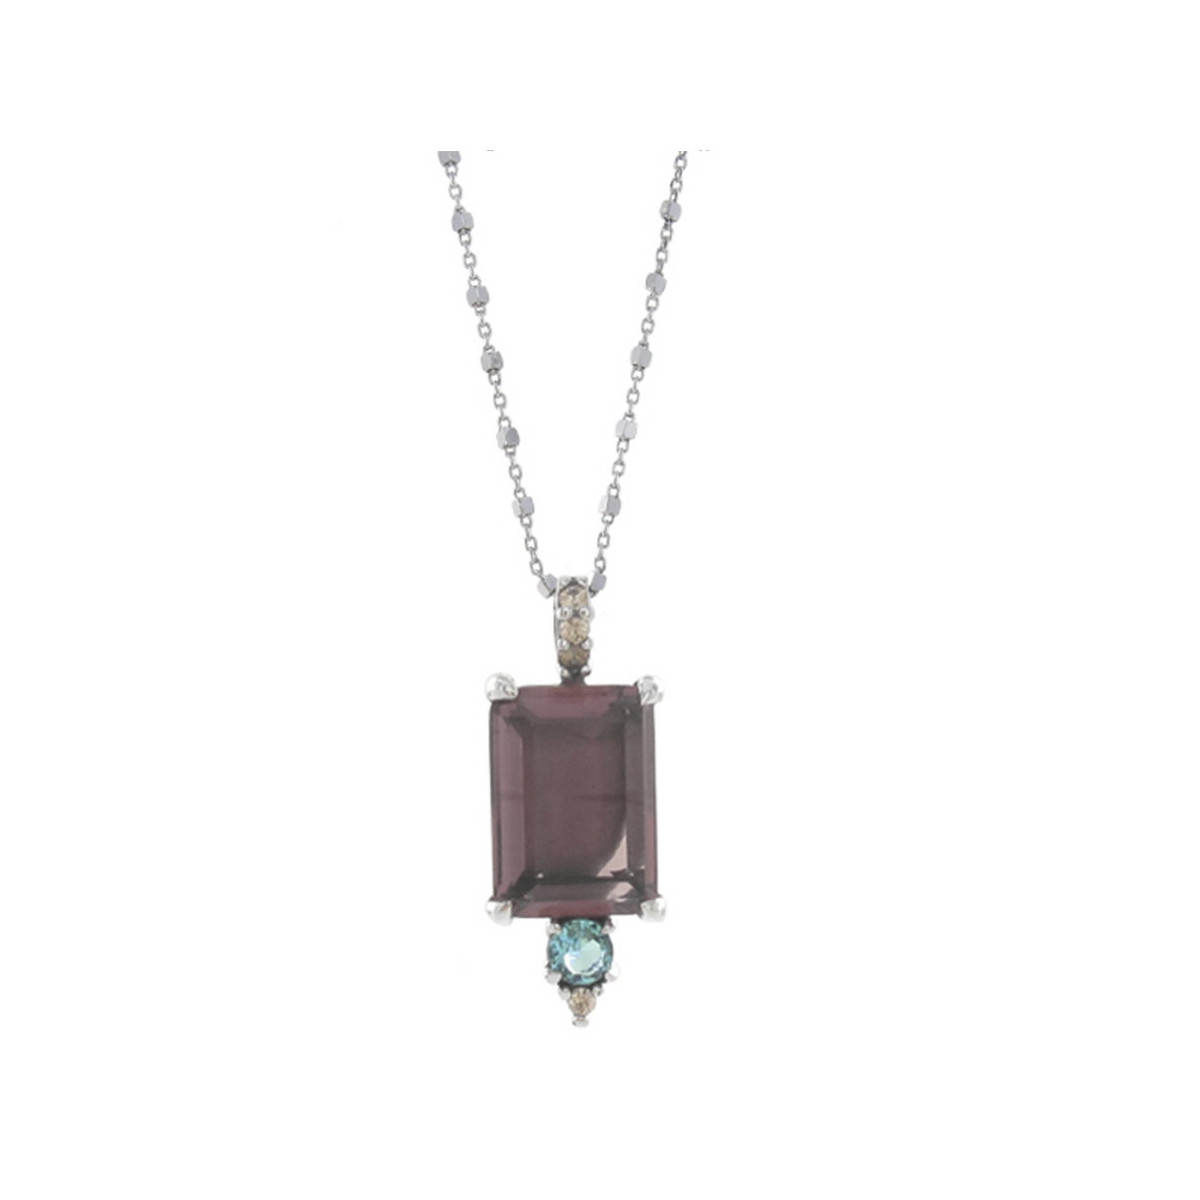 SILVER CHAIN WITH COLORED STONES PENDANT